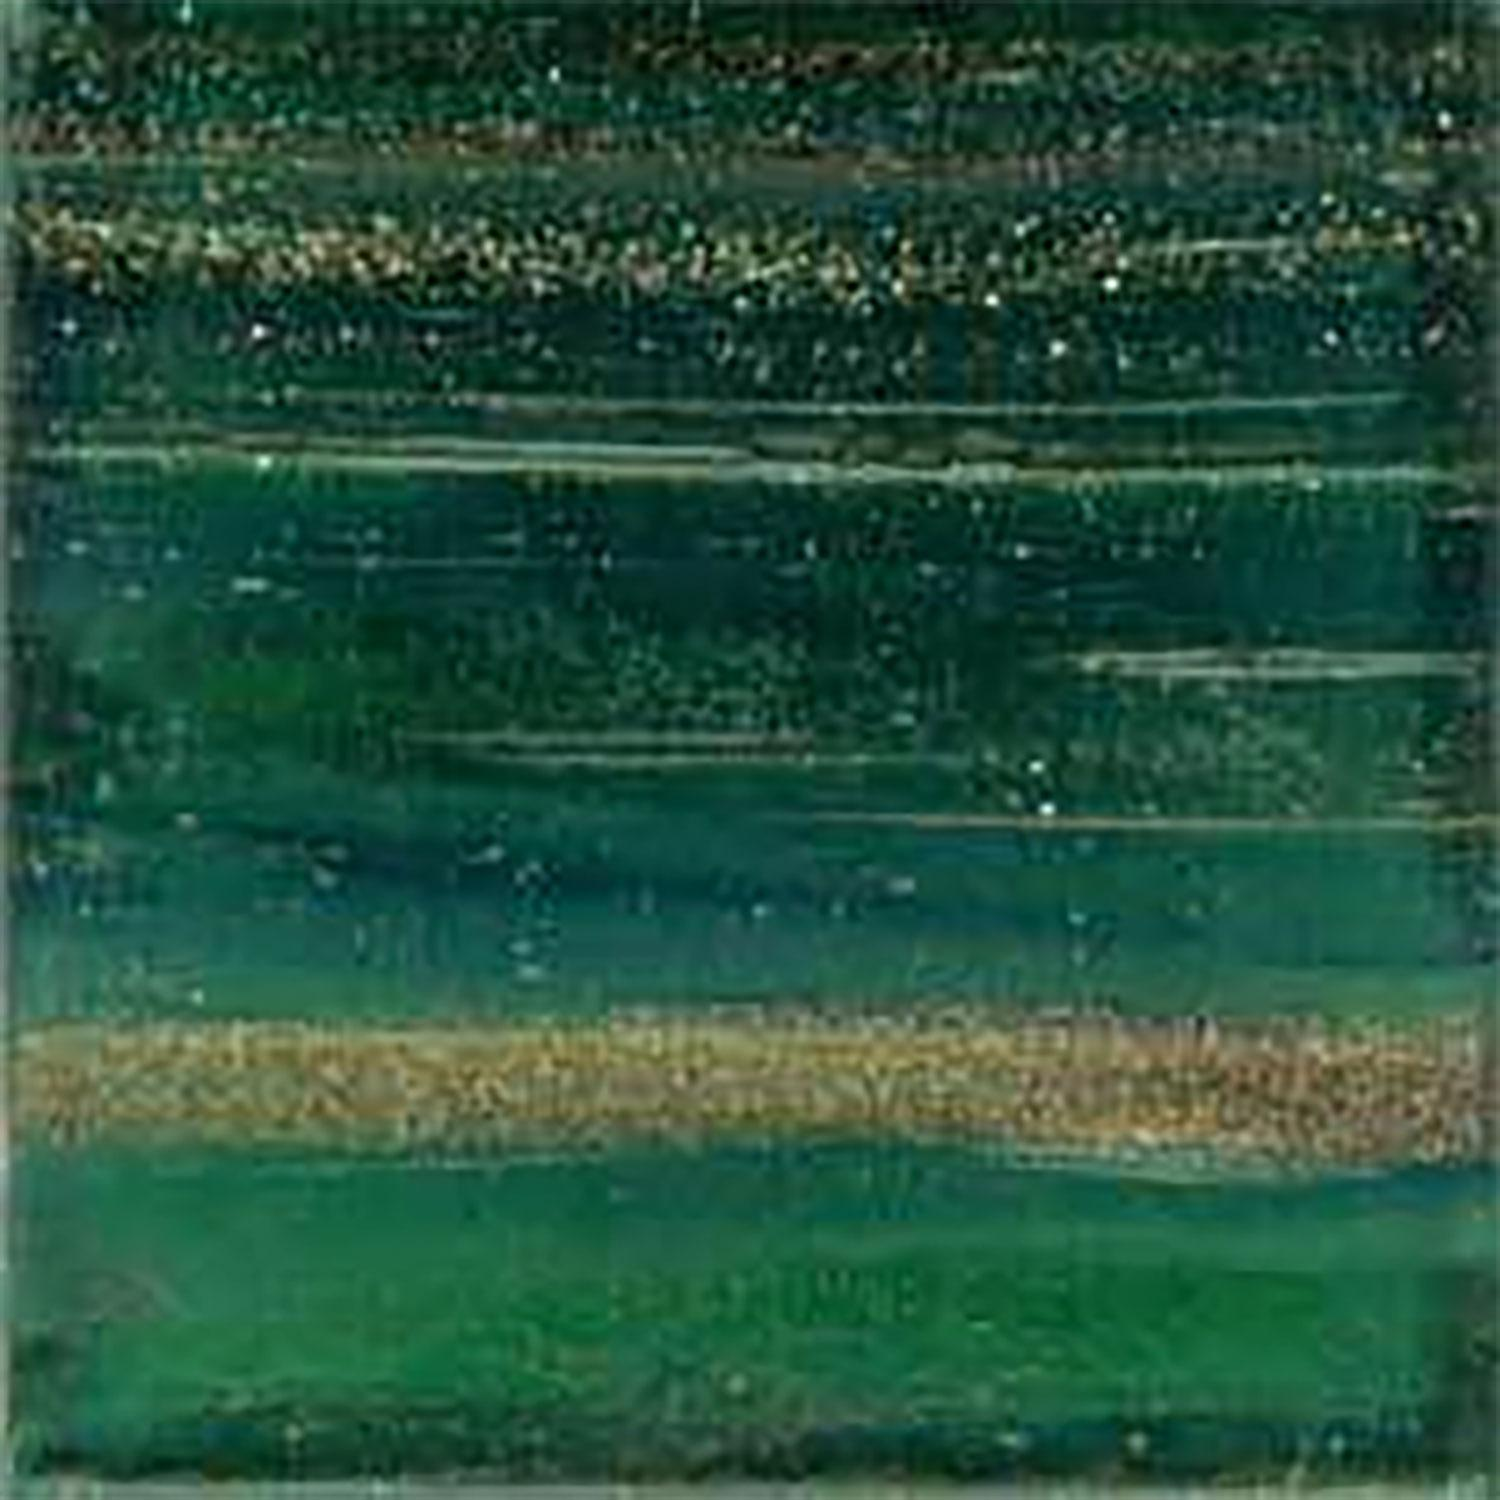 3/8 Emerald Metallic Venetian Glass Tiles - 1 Lb